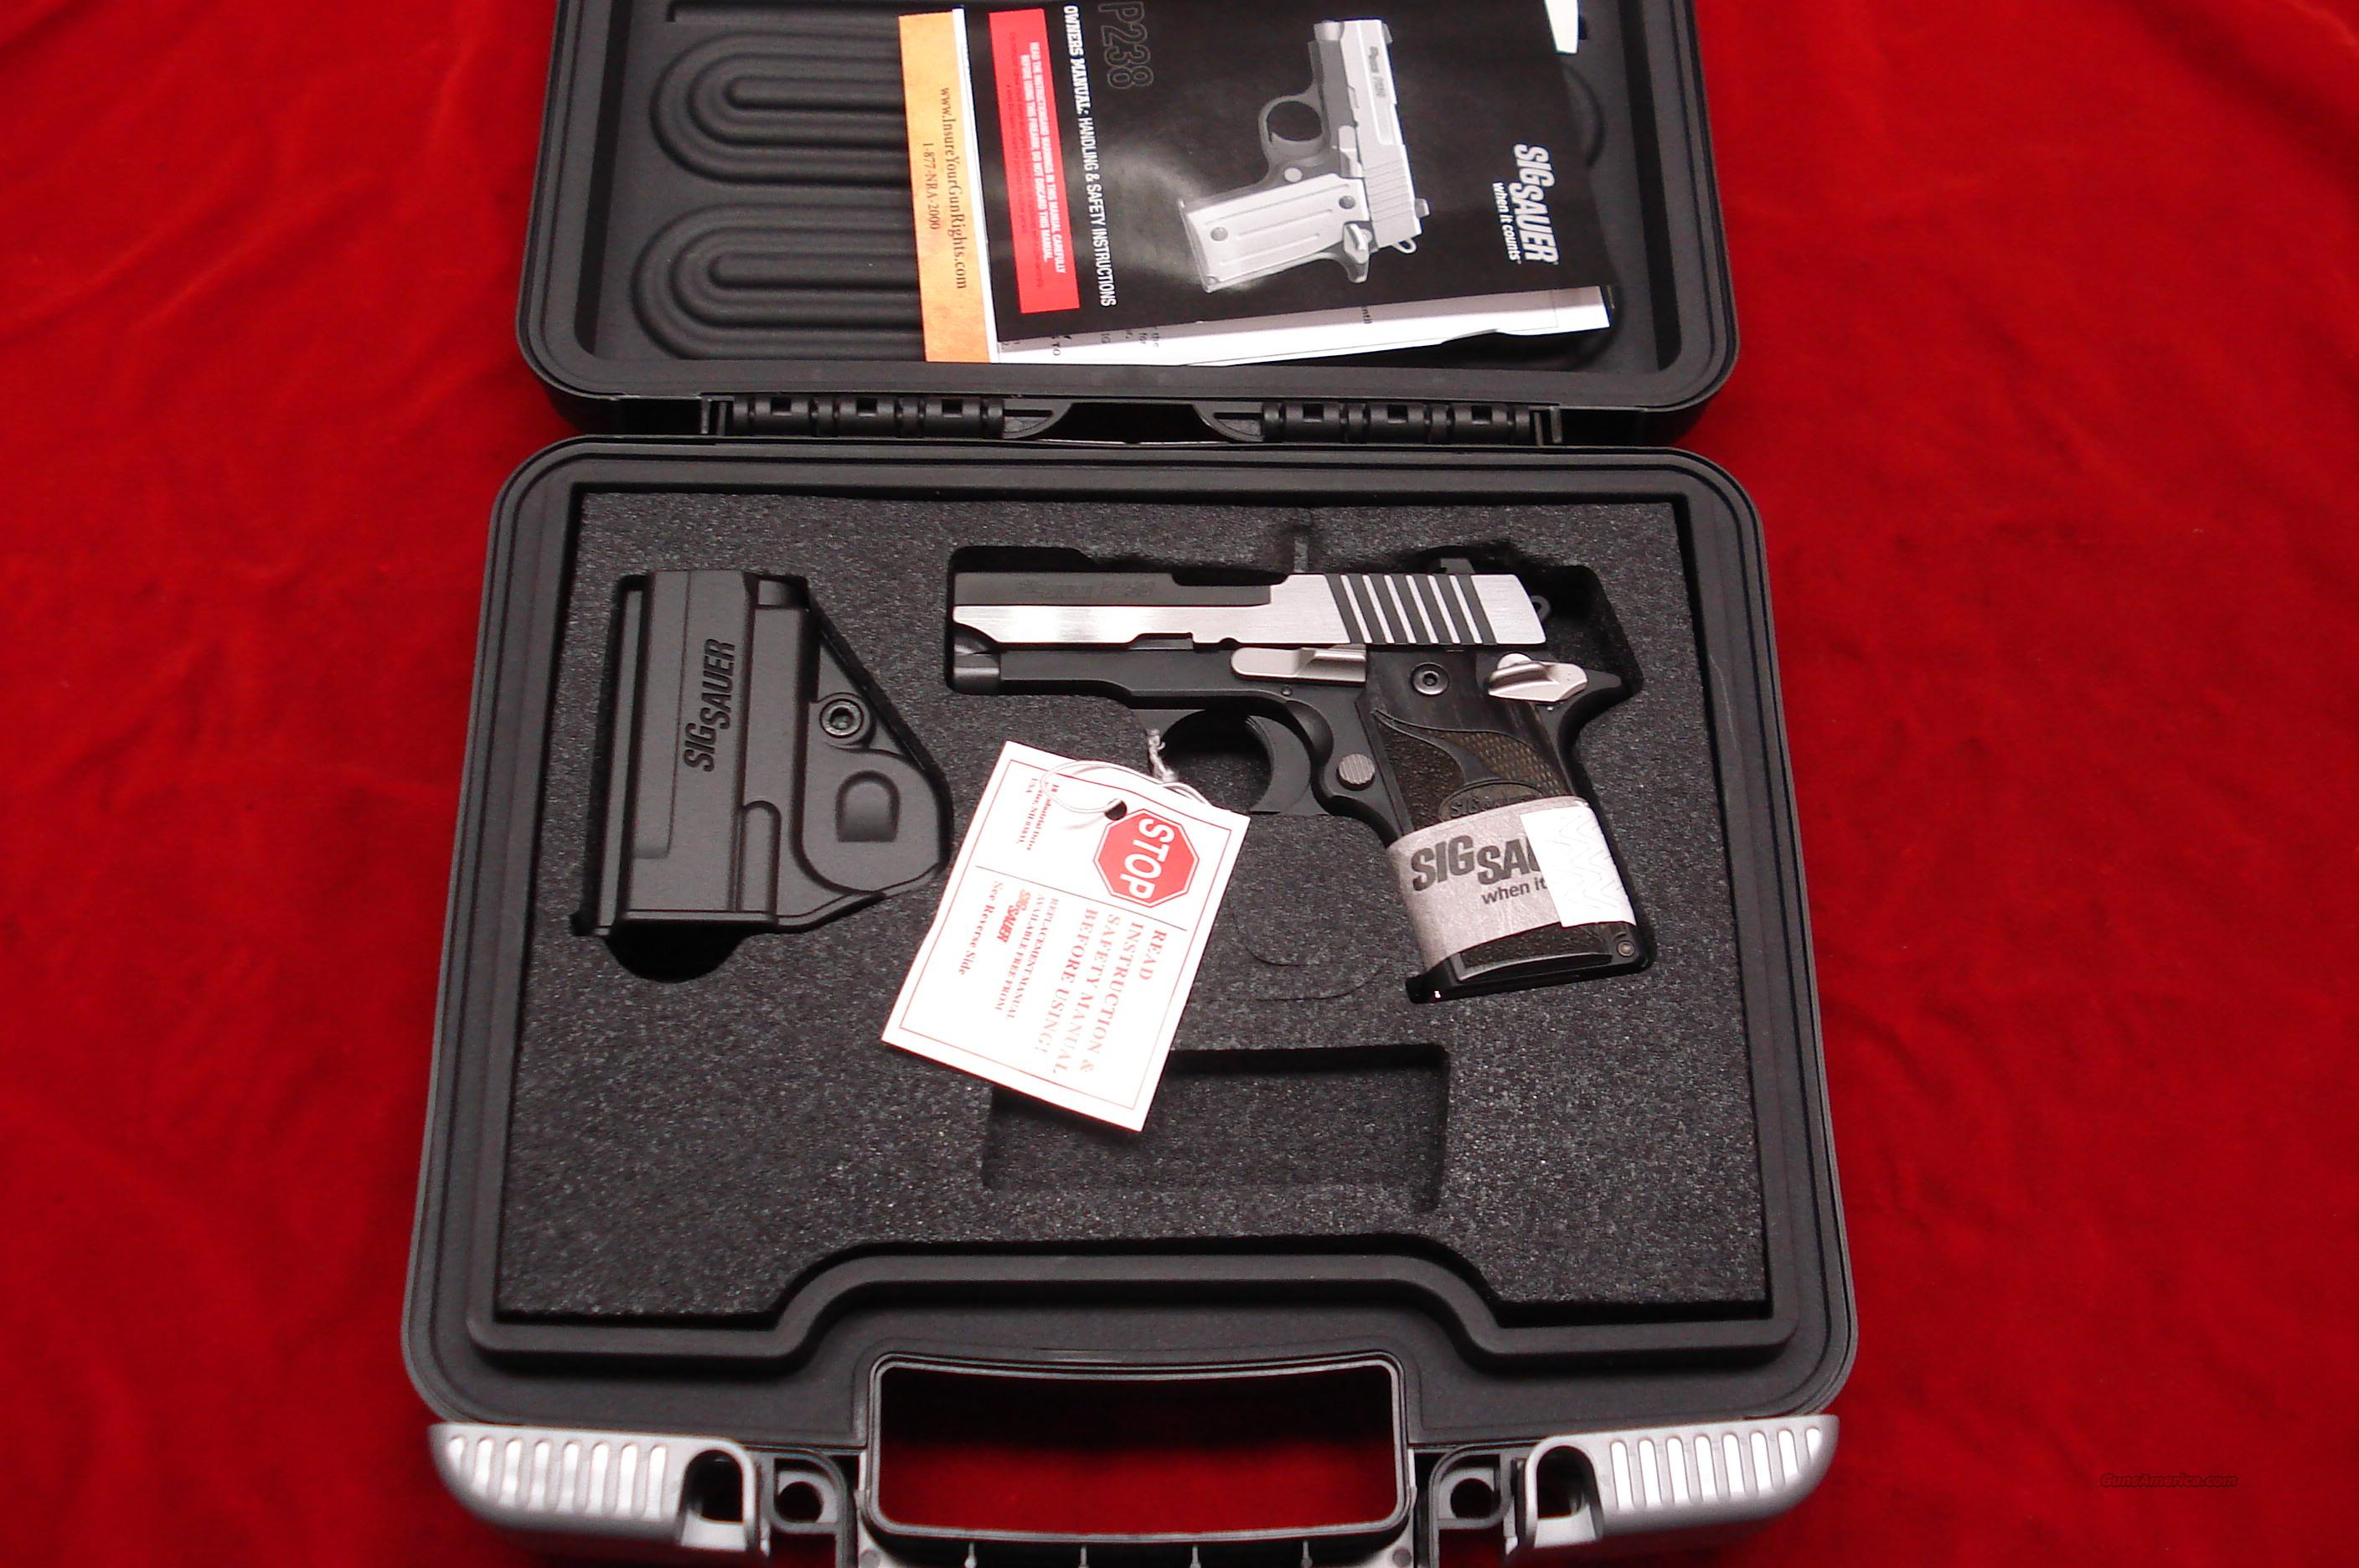 {{ SALE PRICE }} SIG SAUER P238 EQUINOX BLACKEN STAINLESS DUO-TONE 380CAL. W/NIGHT SIGHTS NEW   Guns > Pistols > Sig - Sauer/Sigarms Pistols > Other